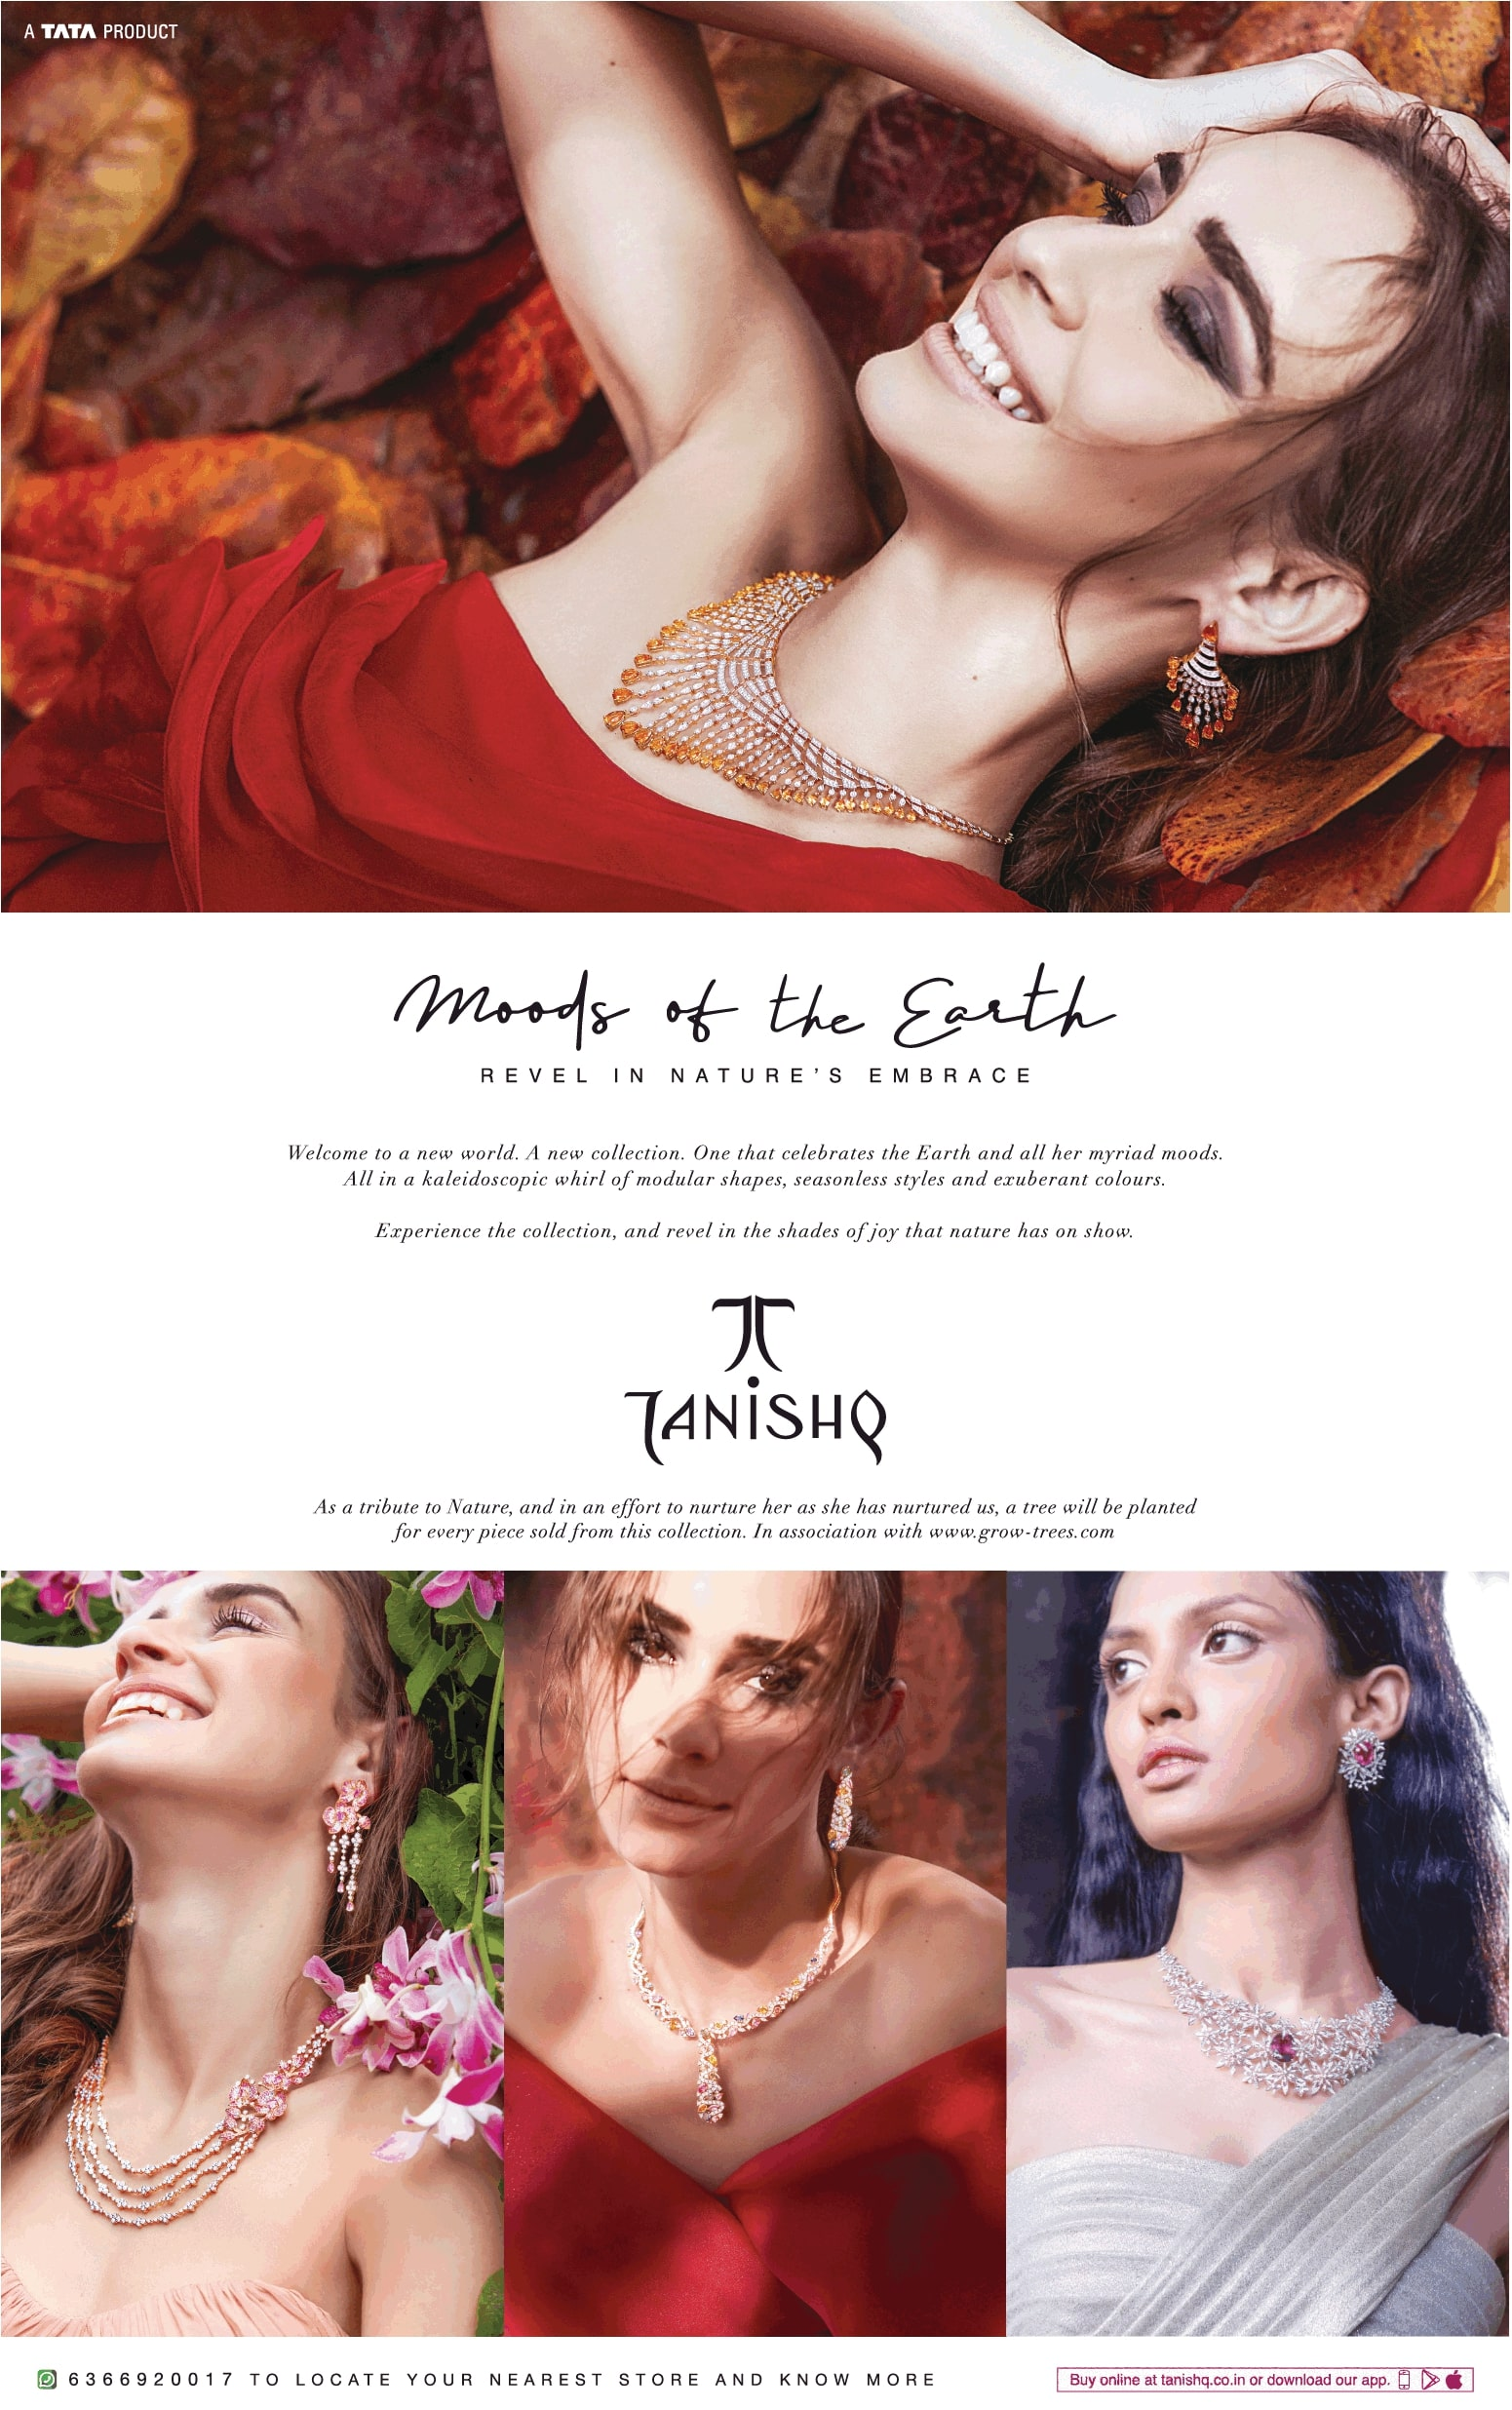 tanishq-moods-of-the-earth-jewellery-collection-ad-toi-delhi-26-12-2020